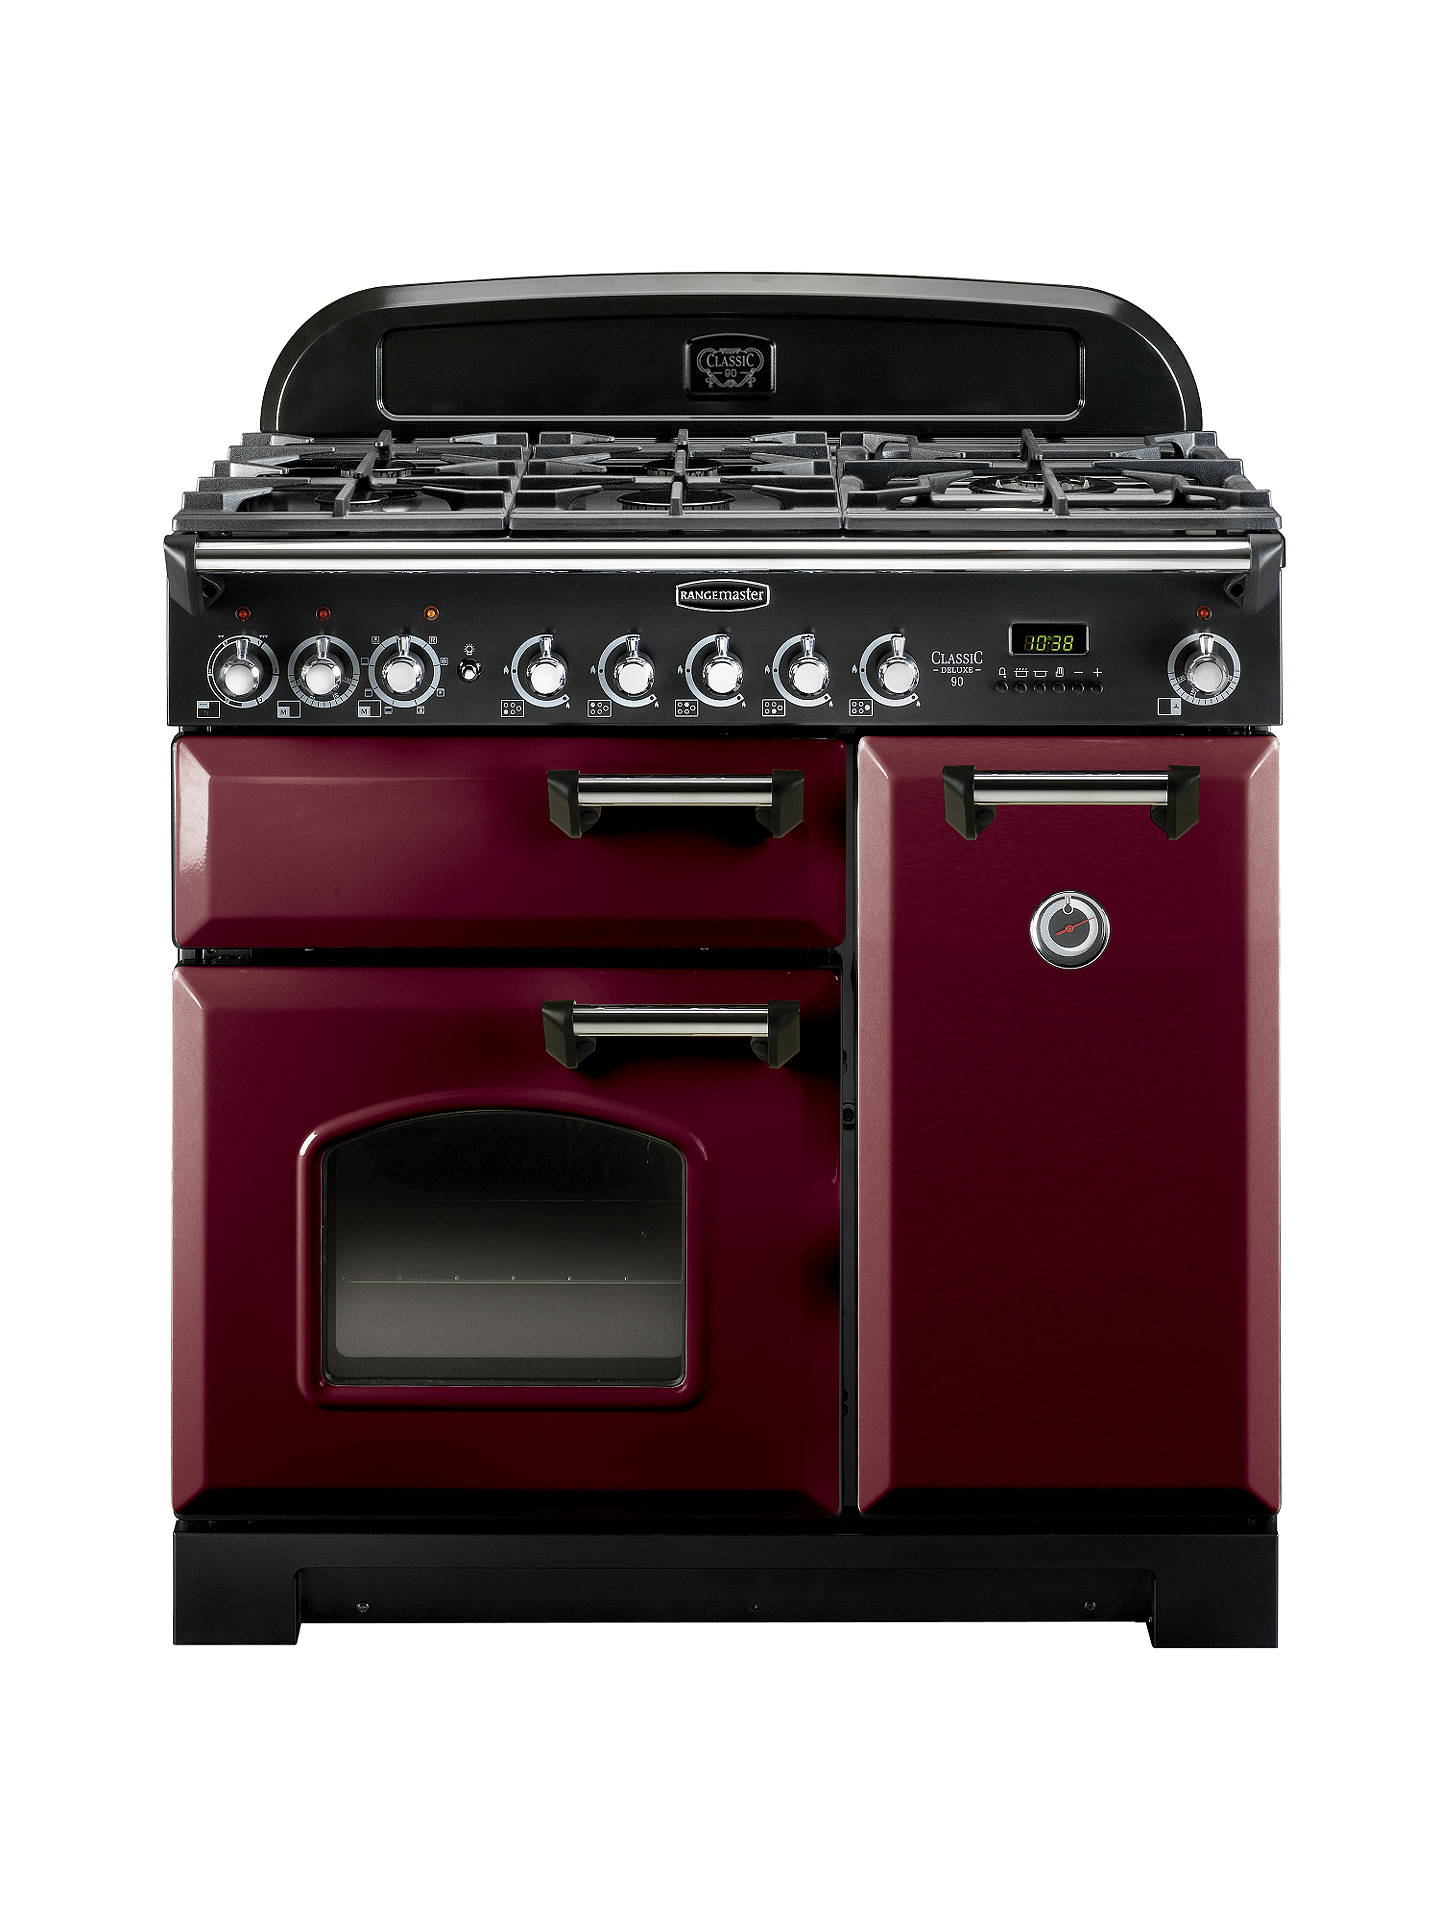 BuyRangemaster Classic Deluxe 90 Dual Fuel Range Cooker, Cranberry/Chrome Trim Online at johnlewis.com